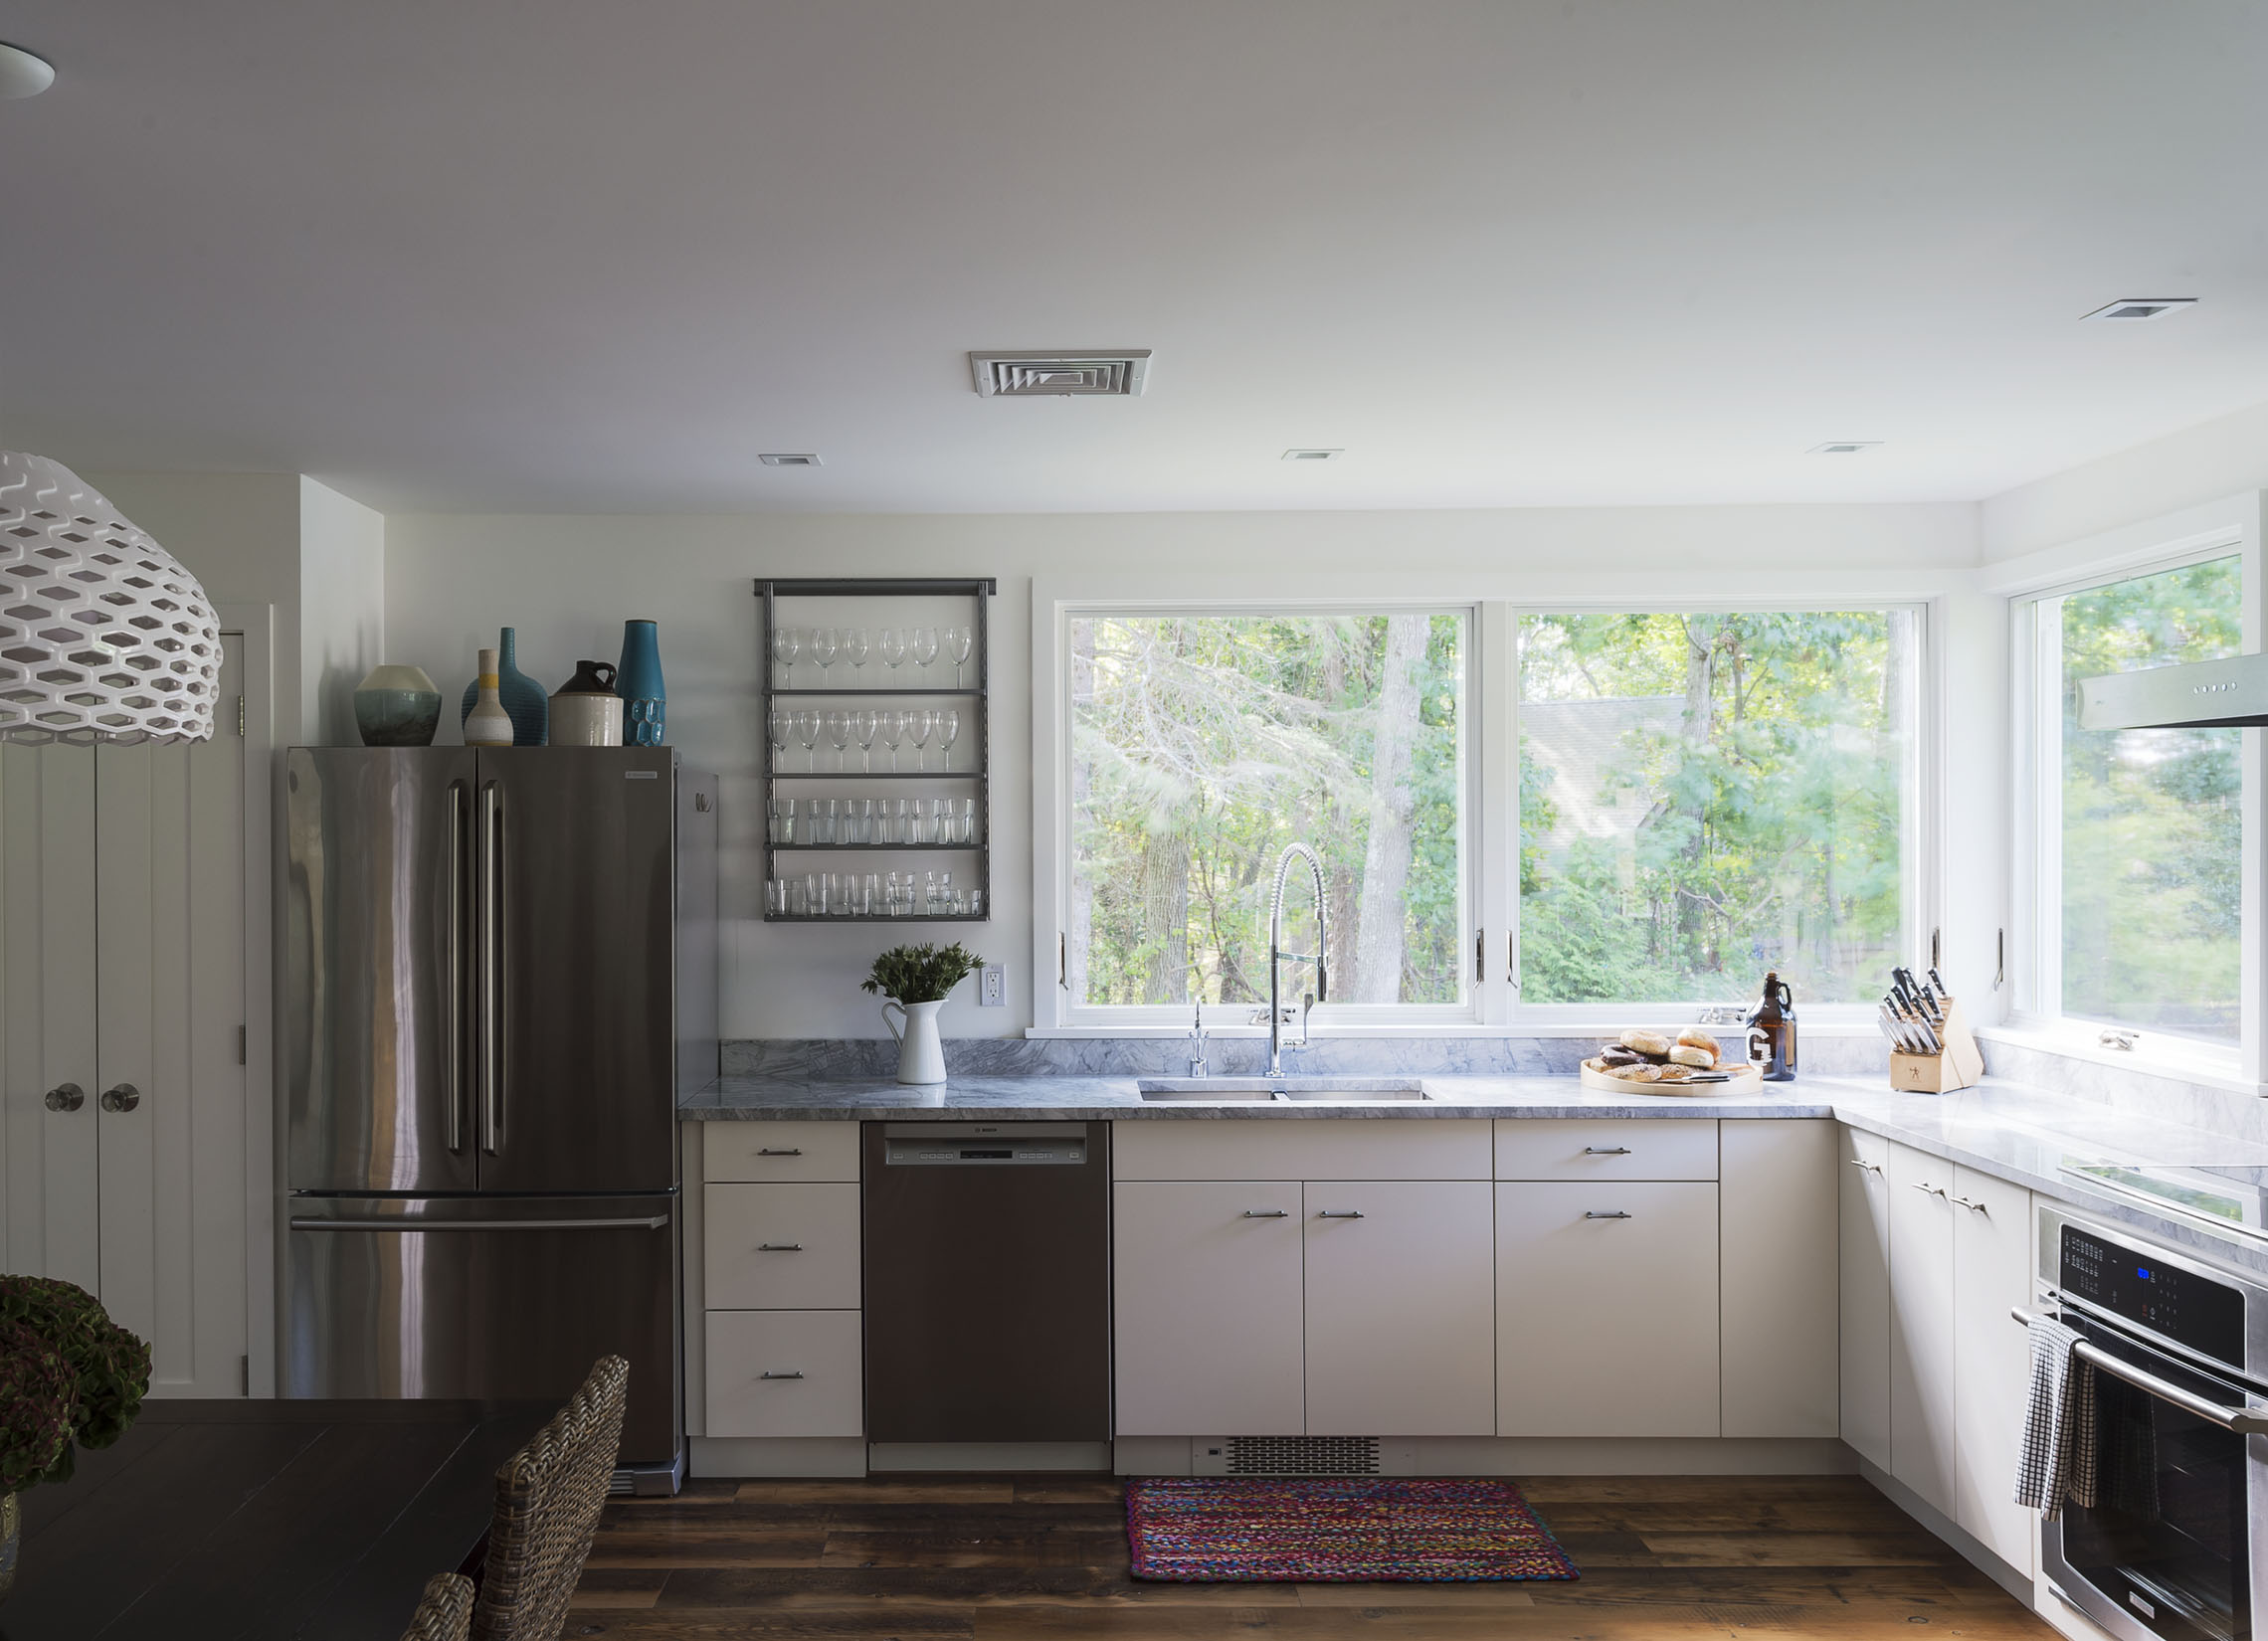 A simple set of Elfa hanging trays provide glassware storage above the dishwasher in an otherwise empty wall of our North Fork home, via  tamarahubinsky.com